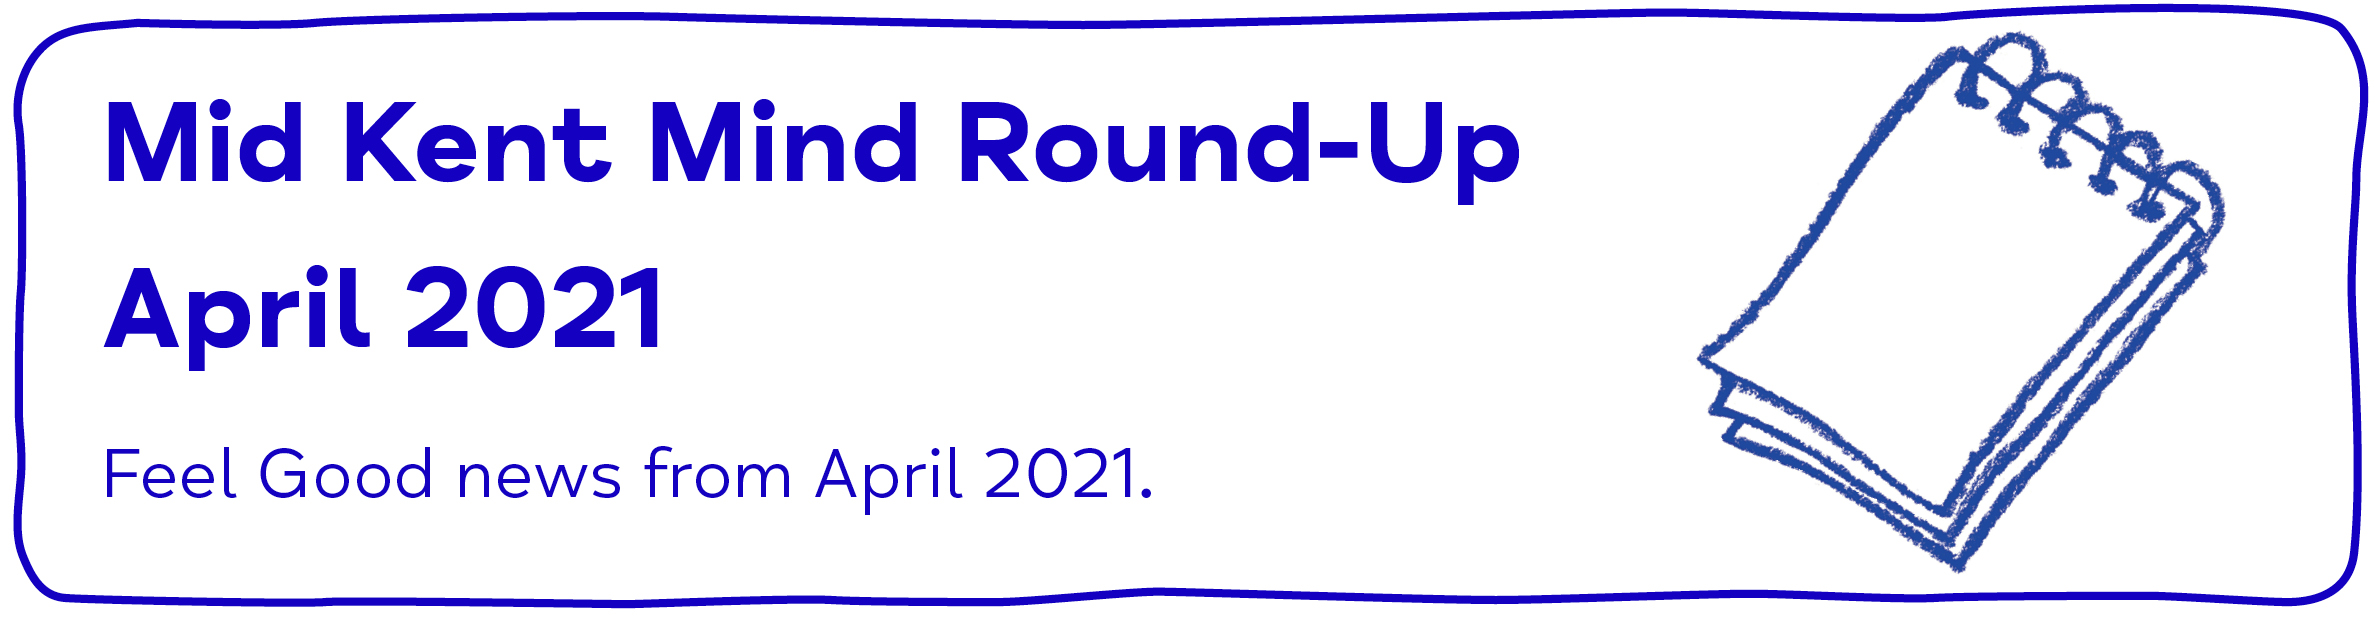 Mid Kent Mind Newsletter - April 2021 - Mid Kent Mind Round-Up. March 2021. Feel-Good news from April 2021.